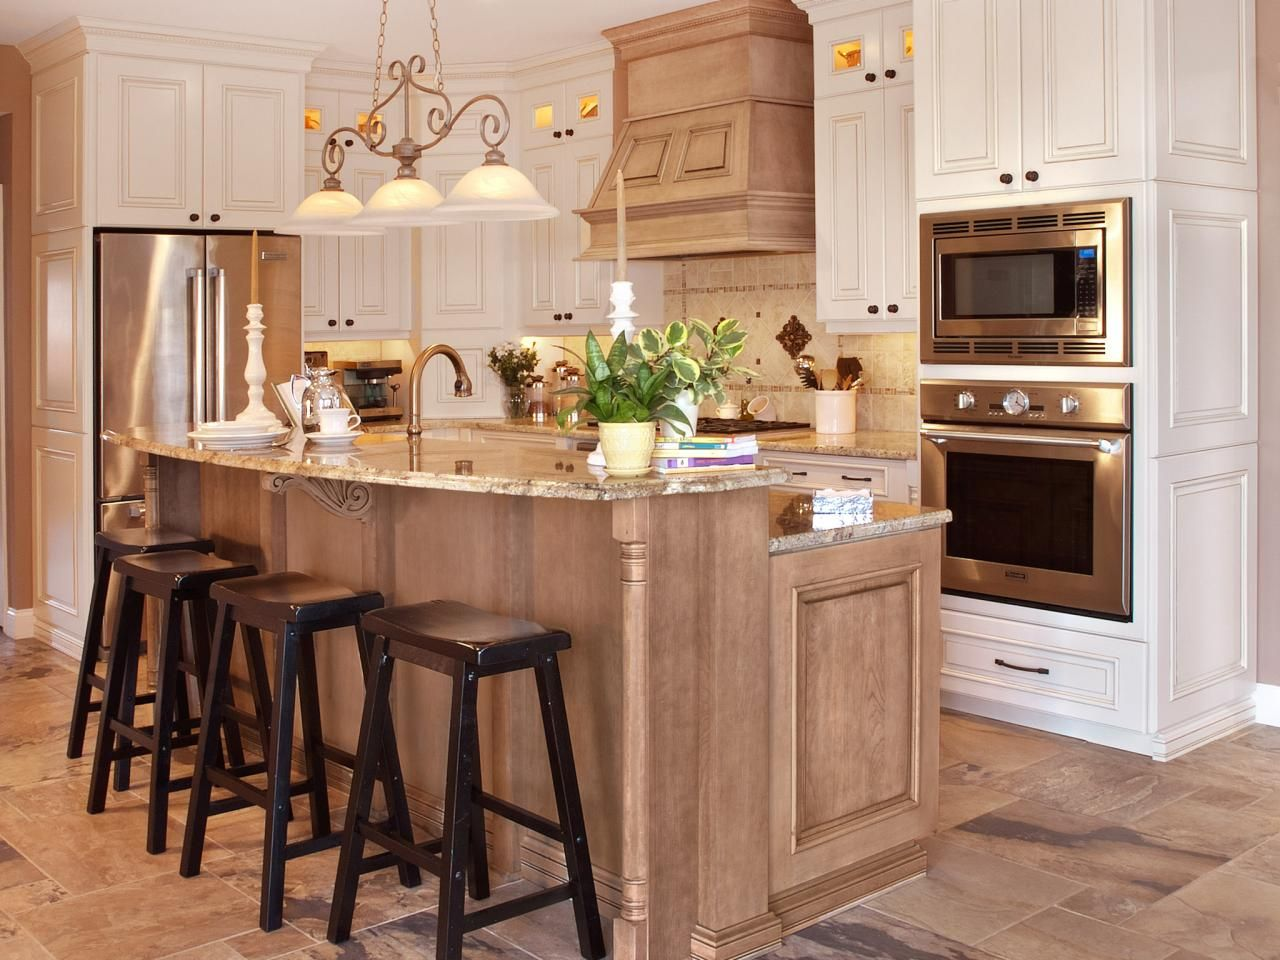 four black barstools at the kitchen island provide a great place